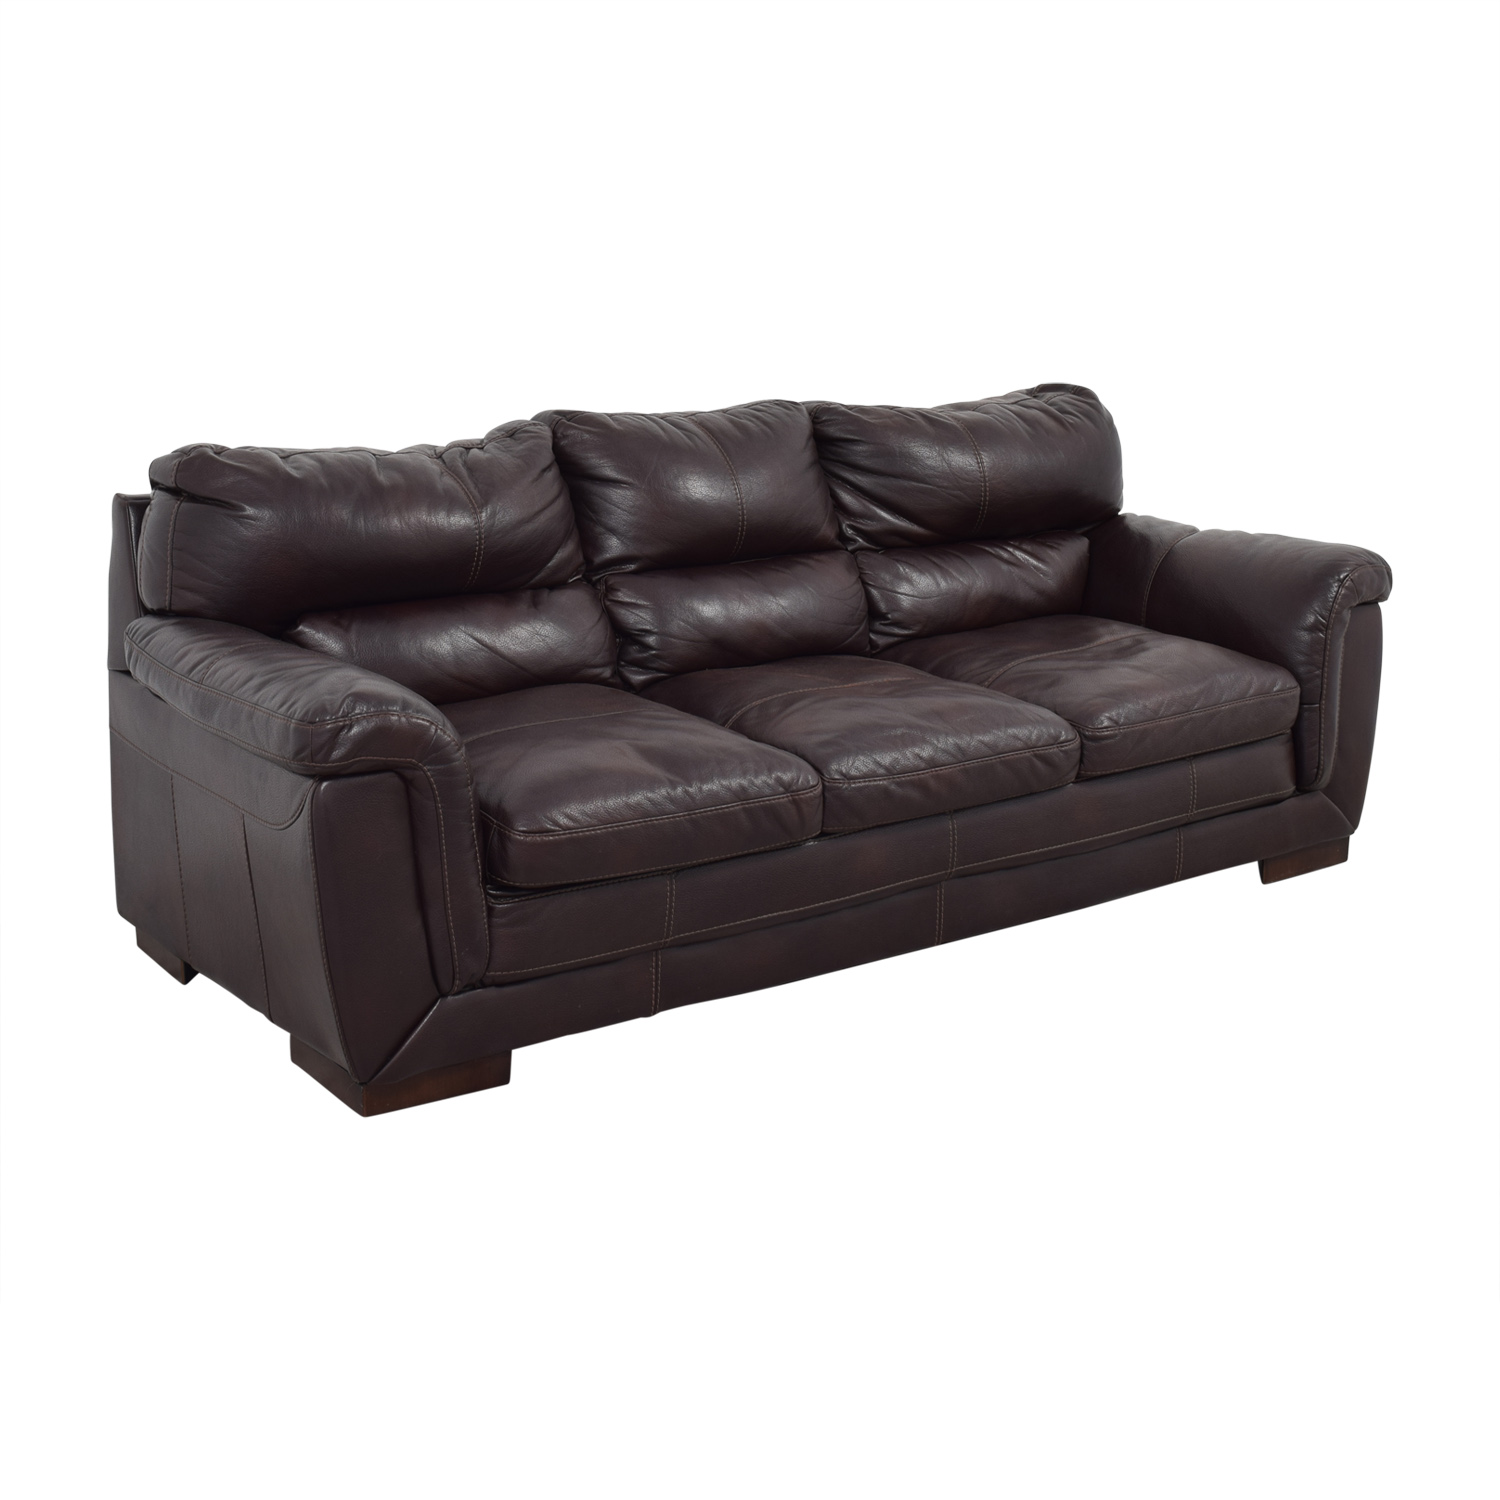 CB2 CB2 Brown Leather Three-Cushion Sofa Classic Sofas